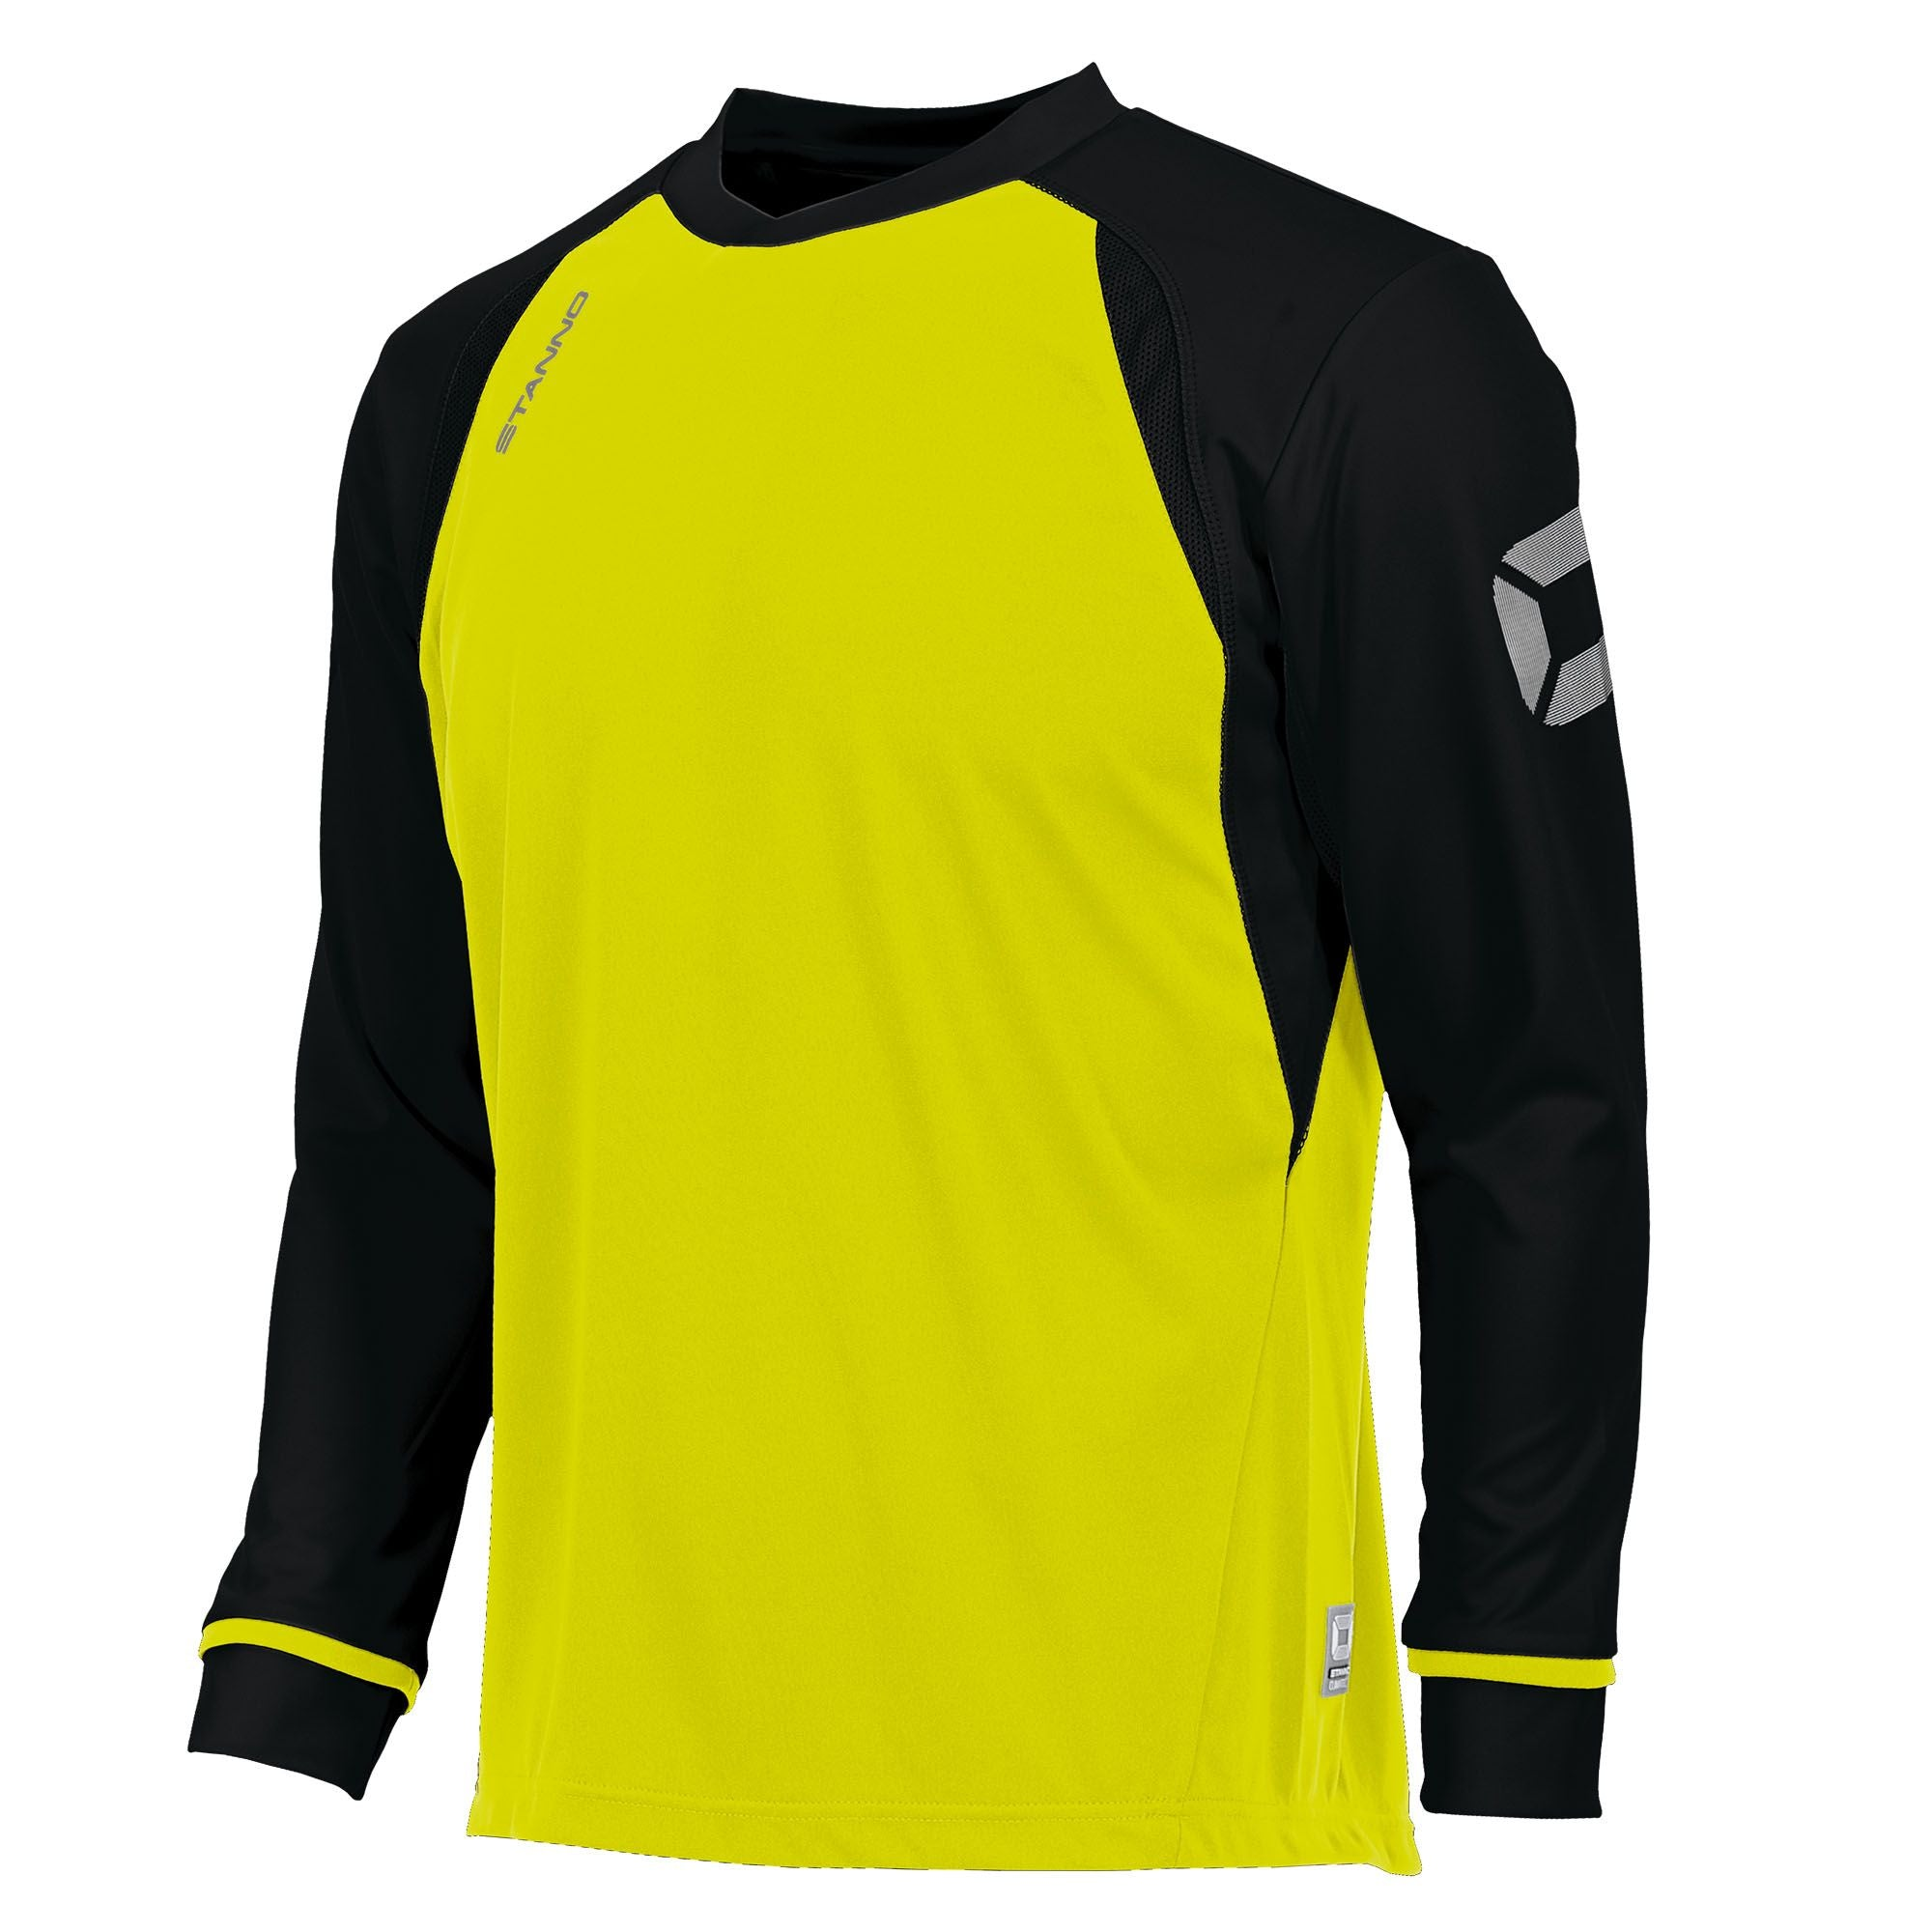 Long sleeved Stanno Liga shirt in neon yellow with contrast black sleeves and collar, Stadium logo on the sleeve.